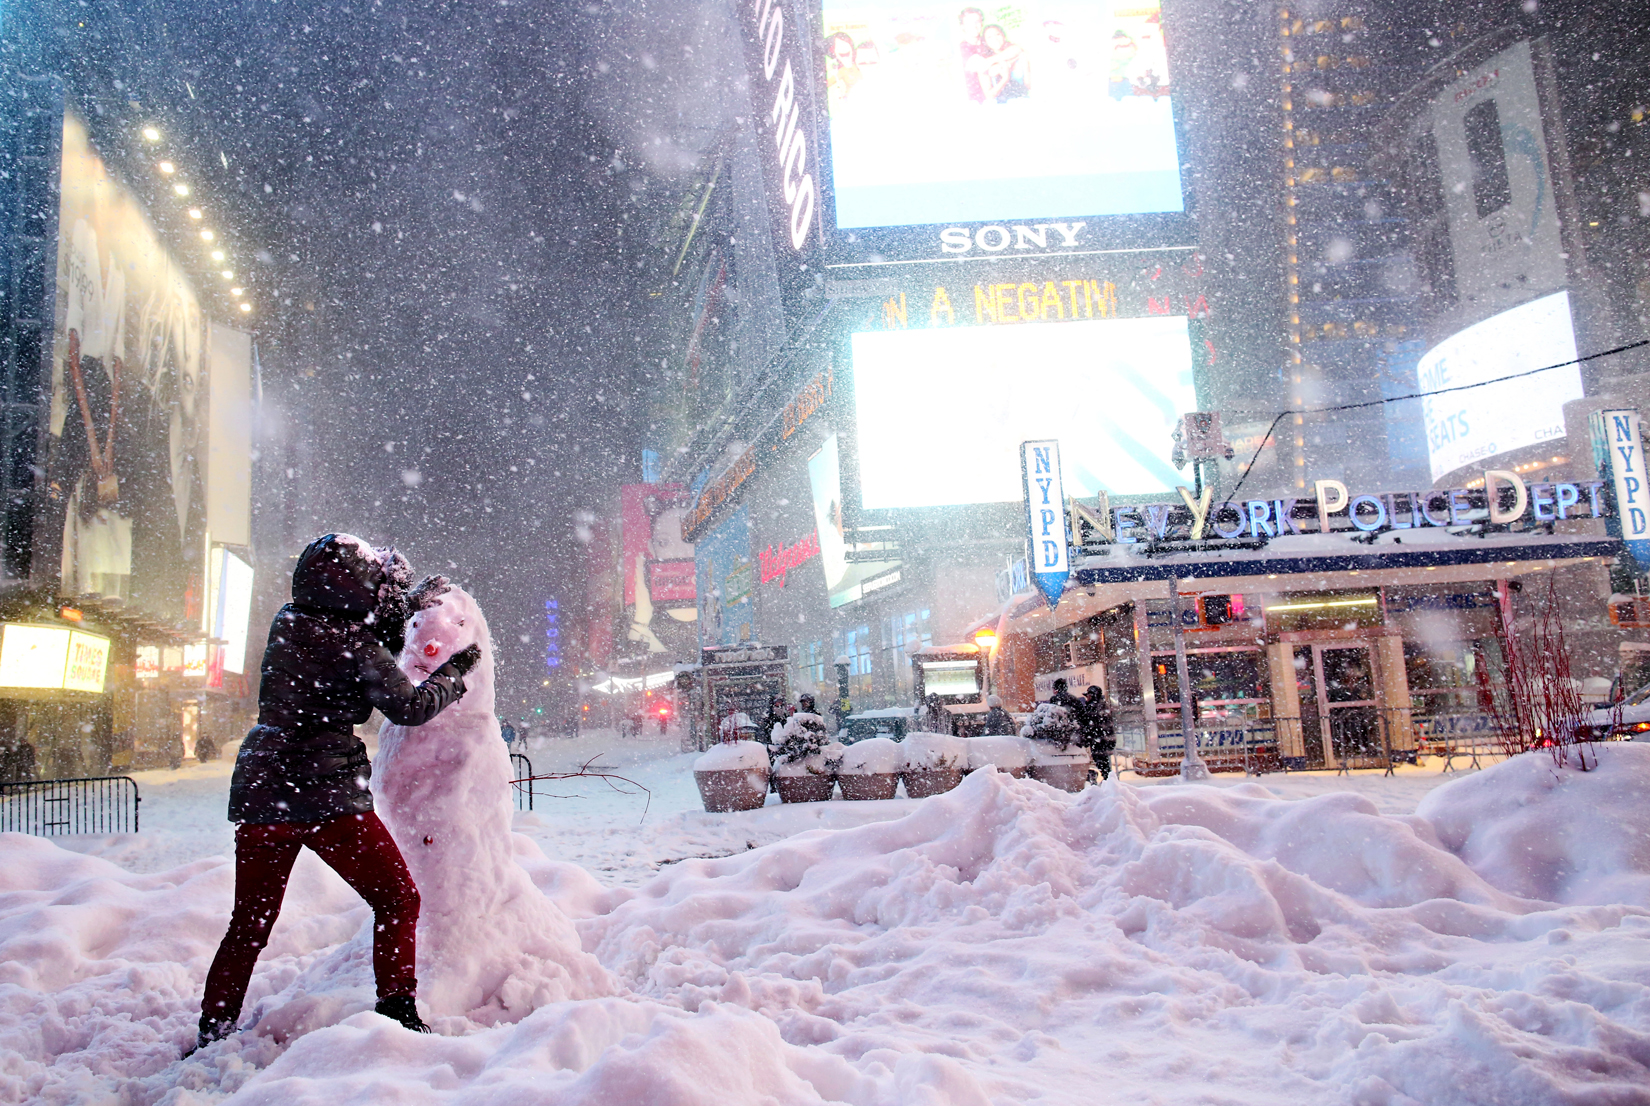 A woman decorates a snowman in Times Square as all cars but emergency vehicles are banned from driving on the roads on January 23, 2016 in New York, NY. The Northeast and parts of the South experienced heavy snow and ice from a slow-moving winter storm, resulting in numerous traffic collision deaths.